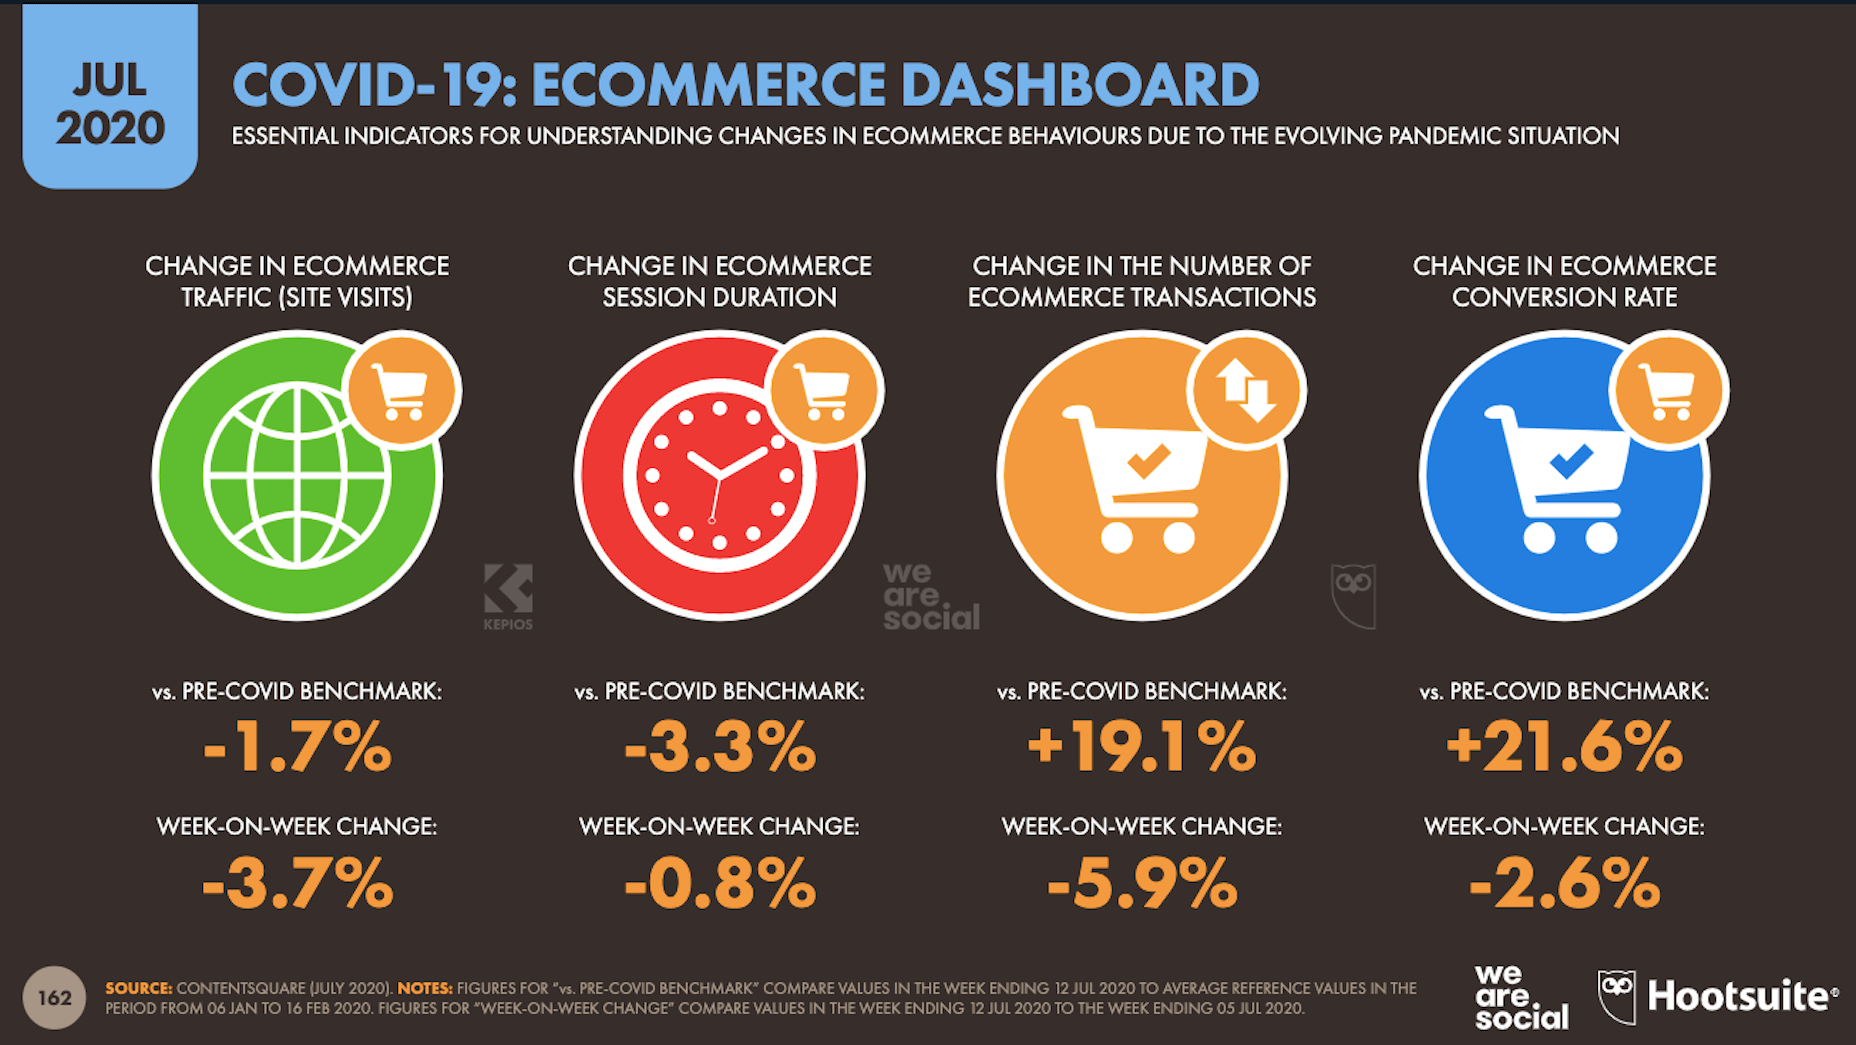 Digital 2020: changes in ecommerce shopping habits during COVID-19